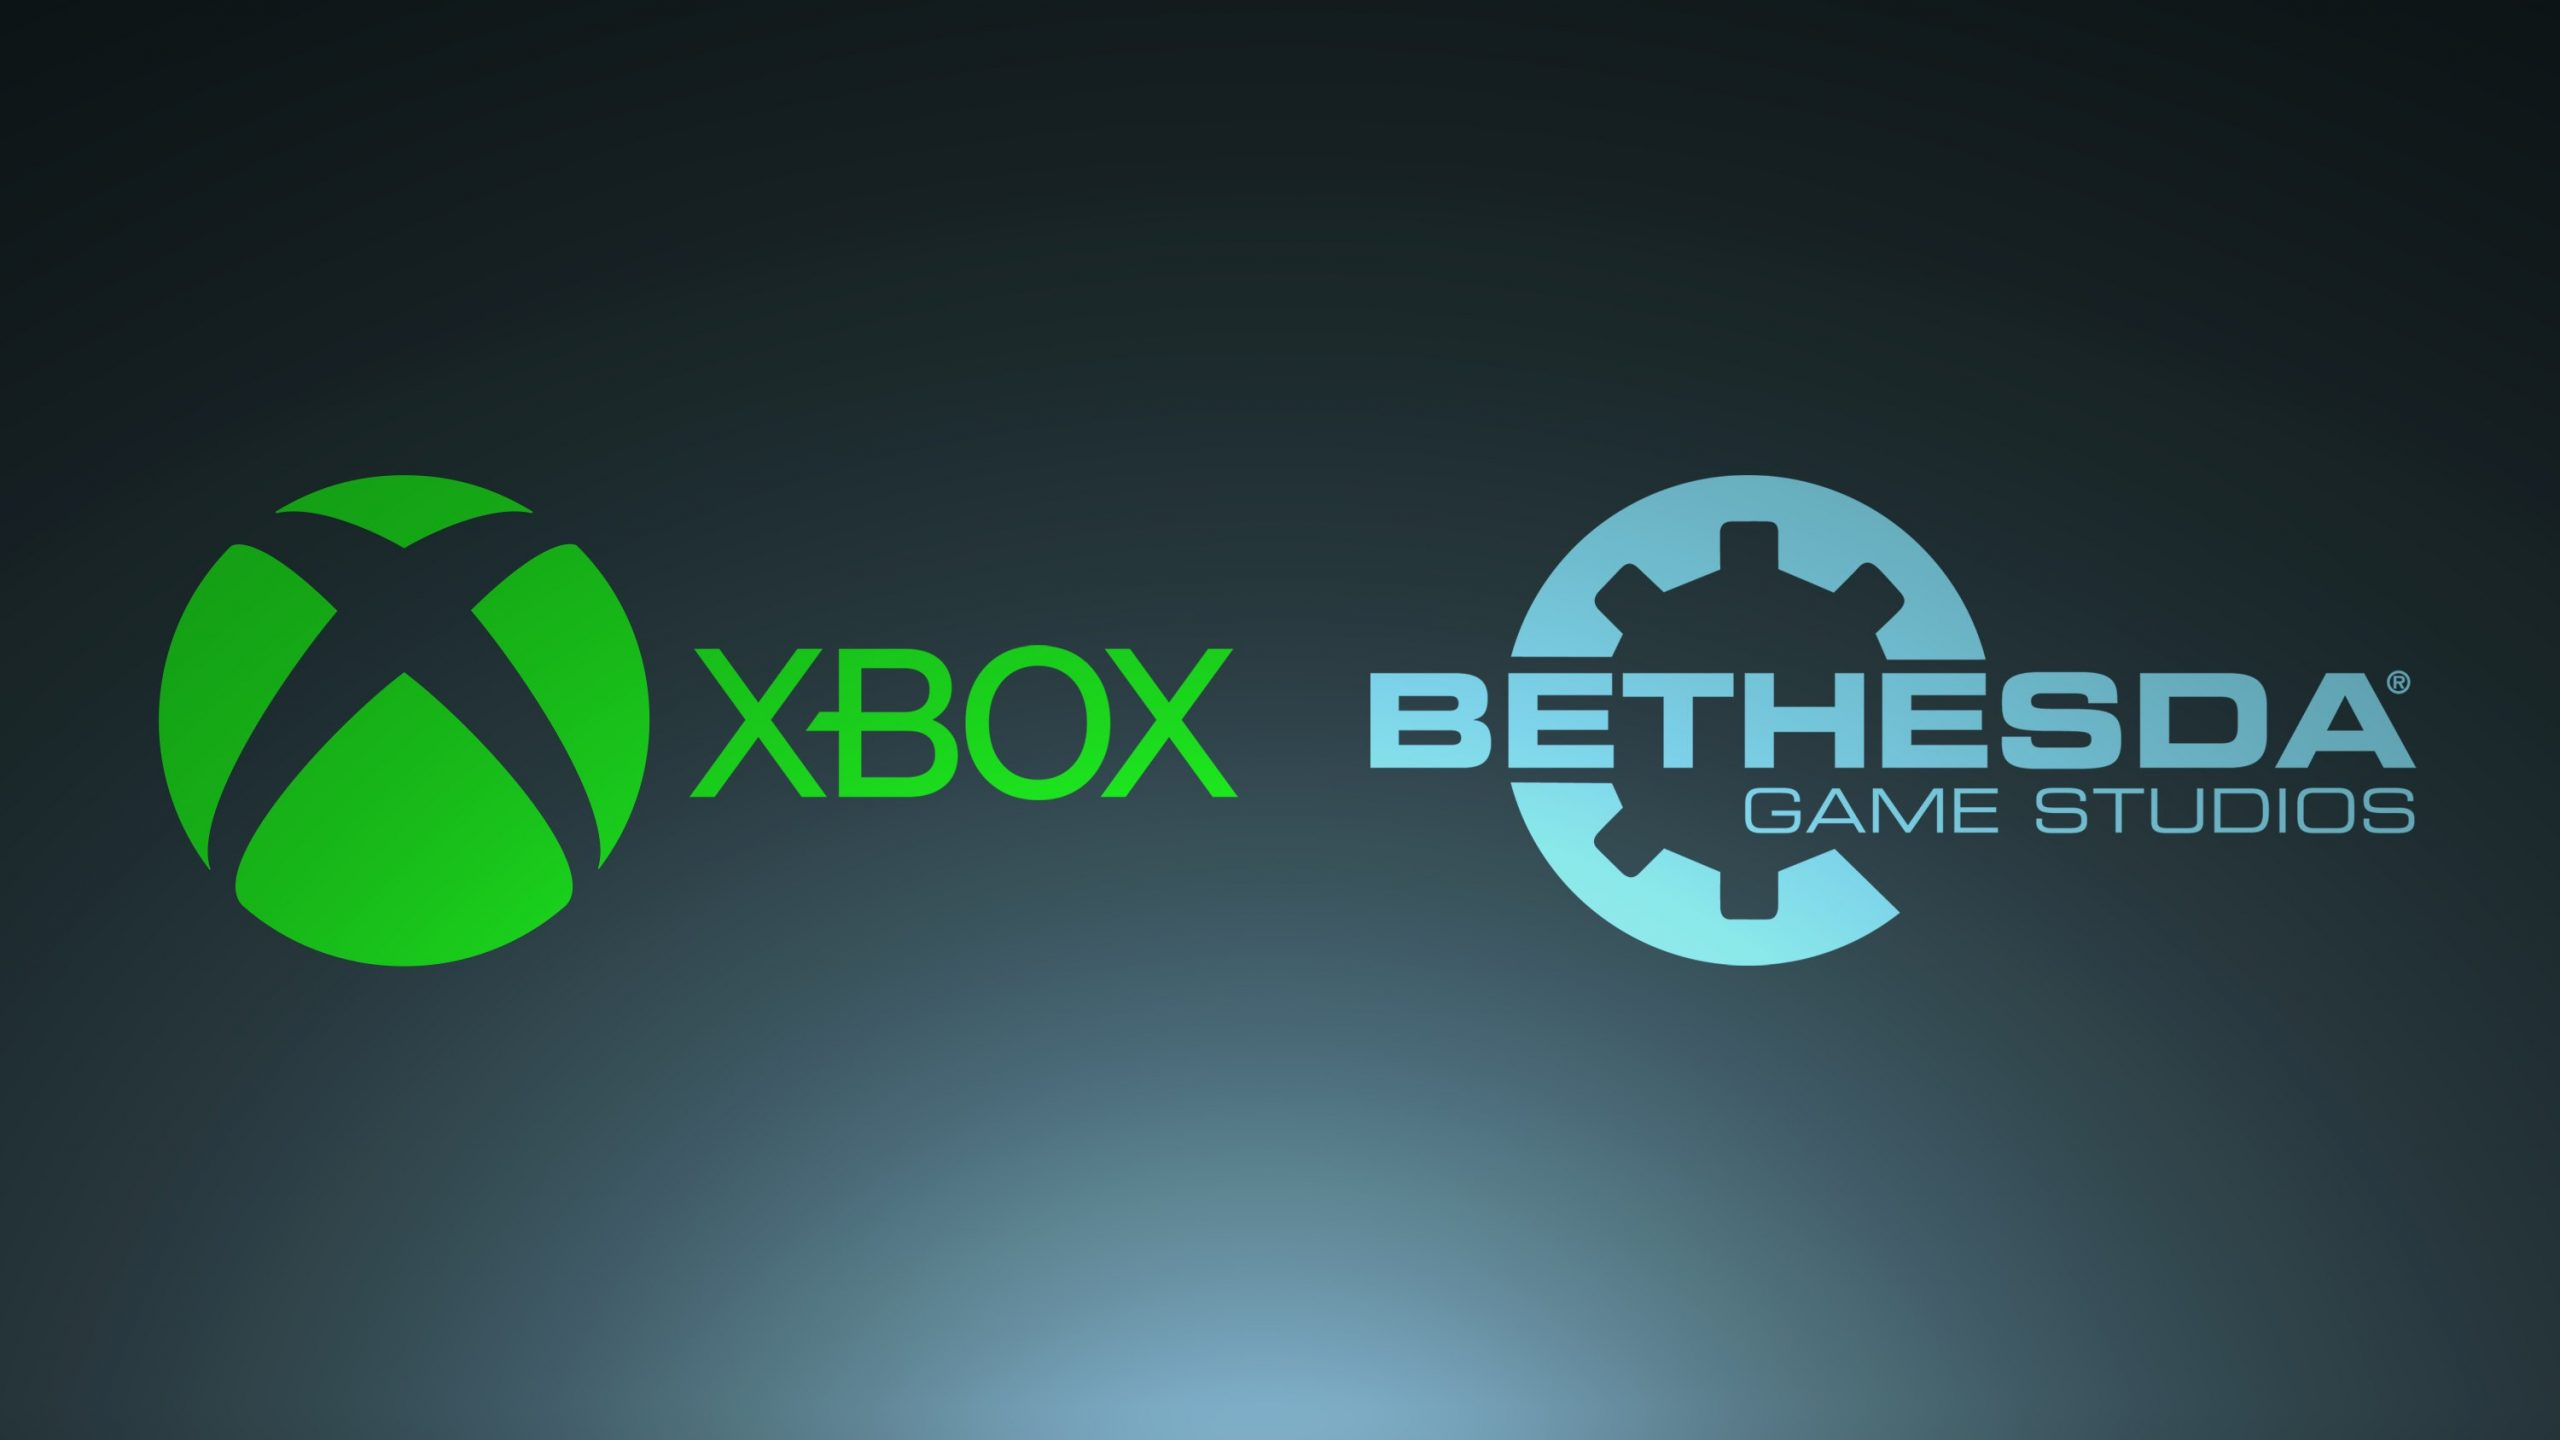 With Microsoft's Acquitison Of Bethesda, Game Pass Is Set To Dominate